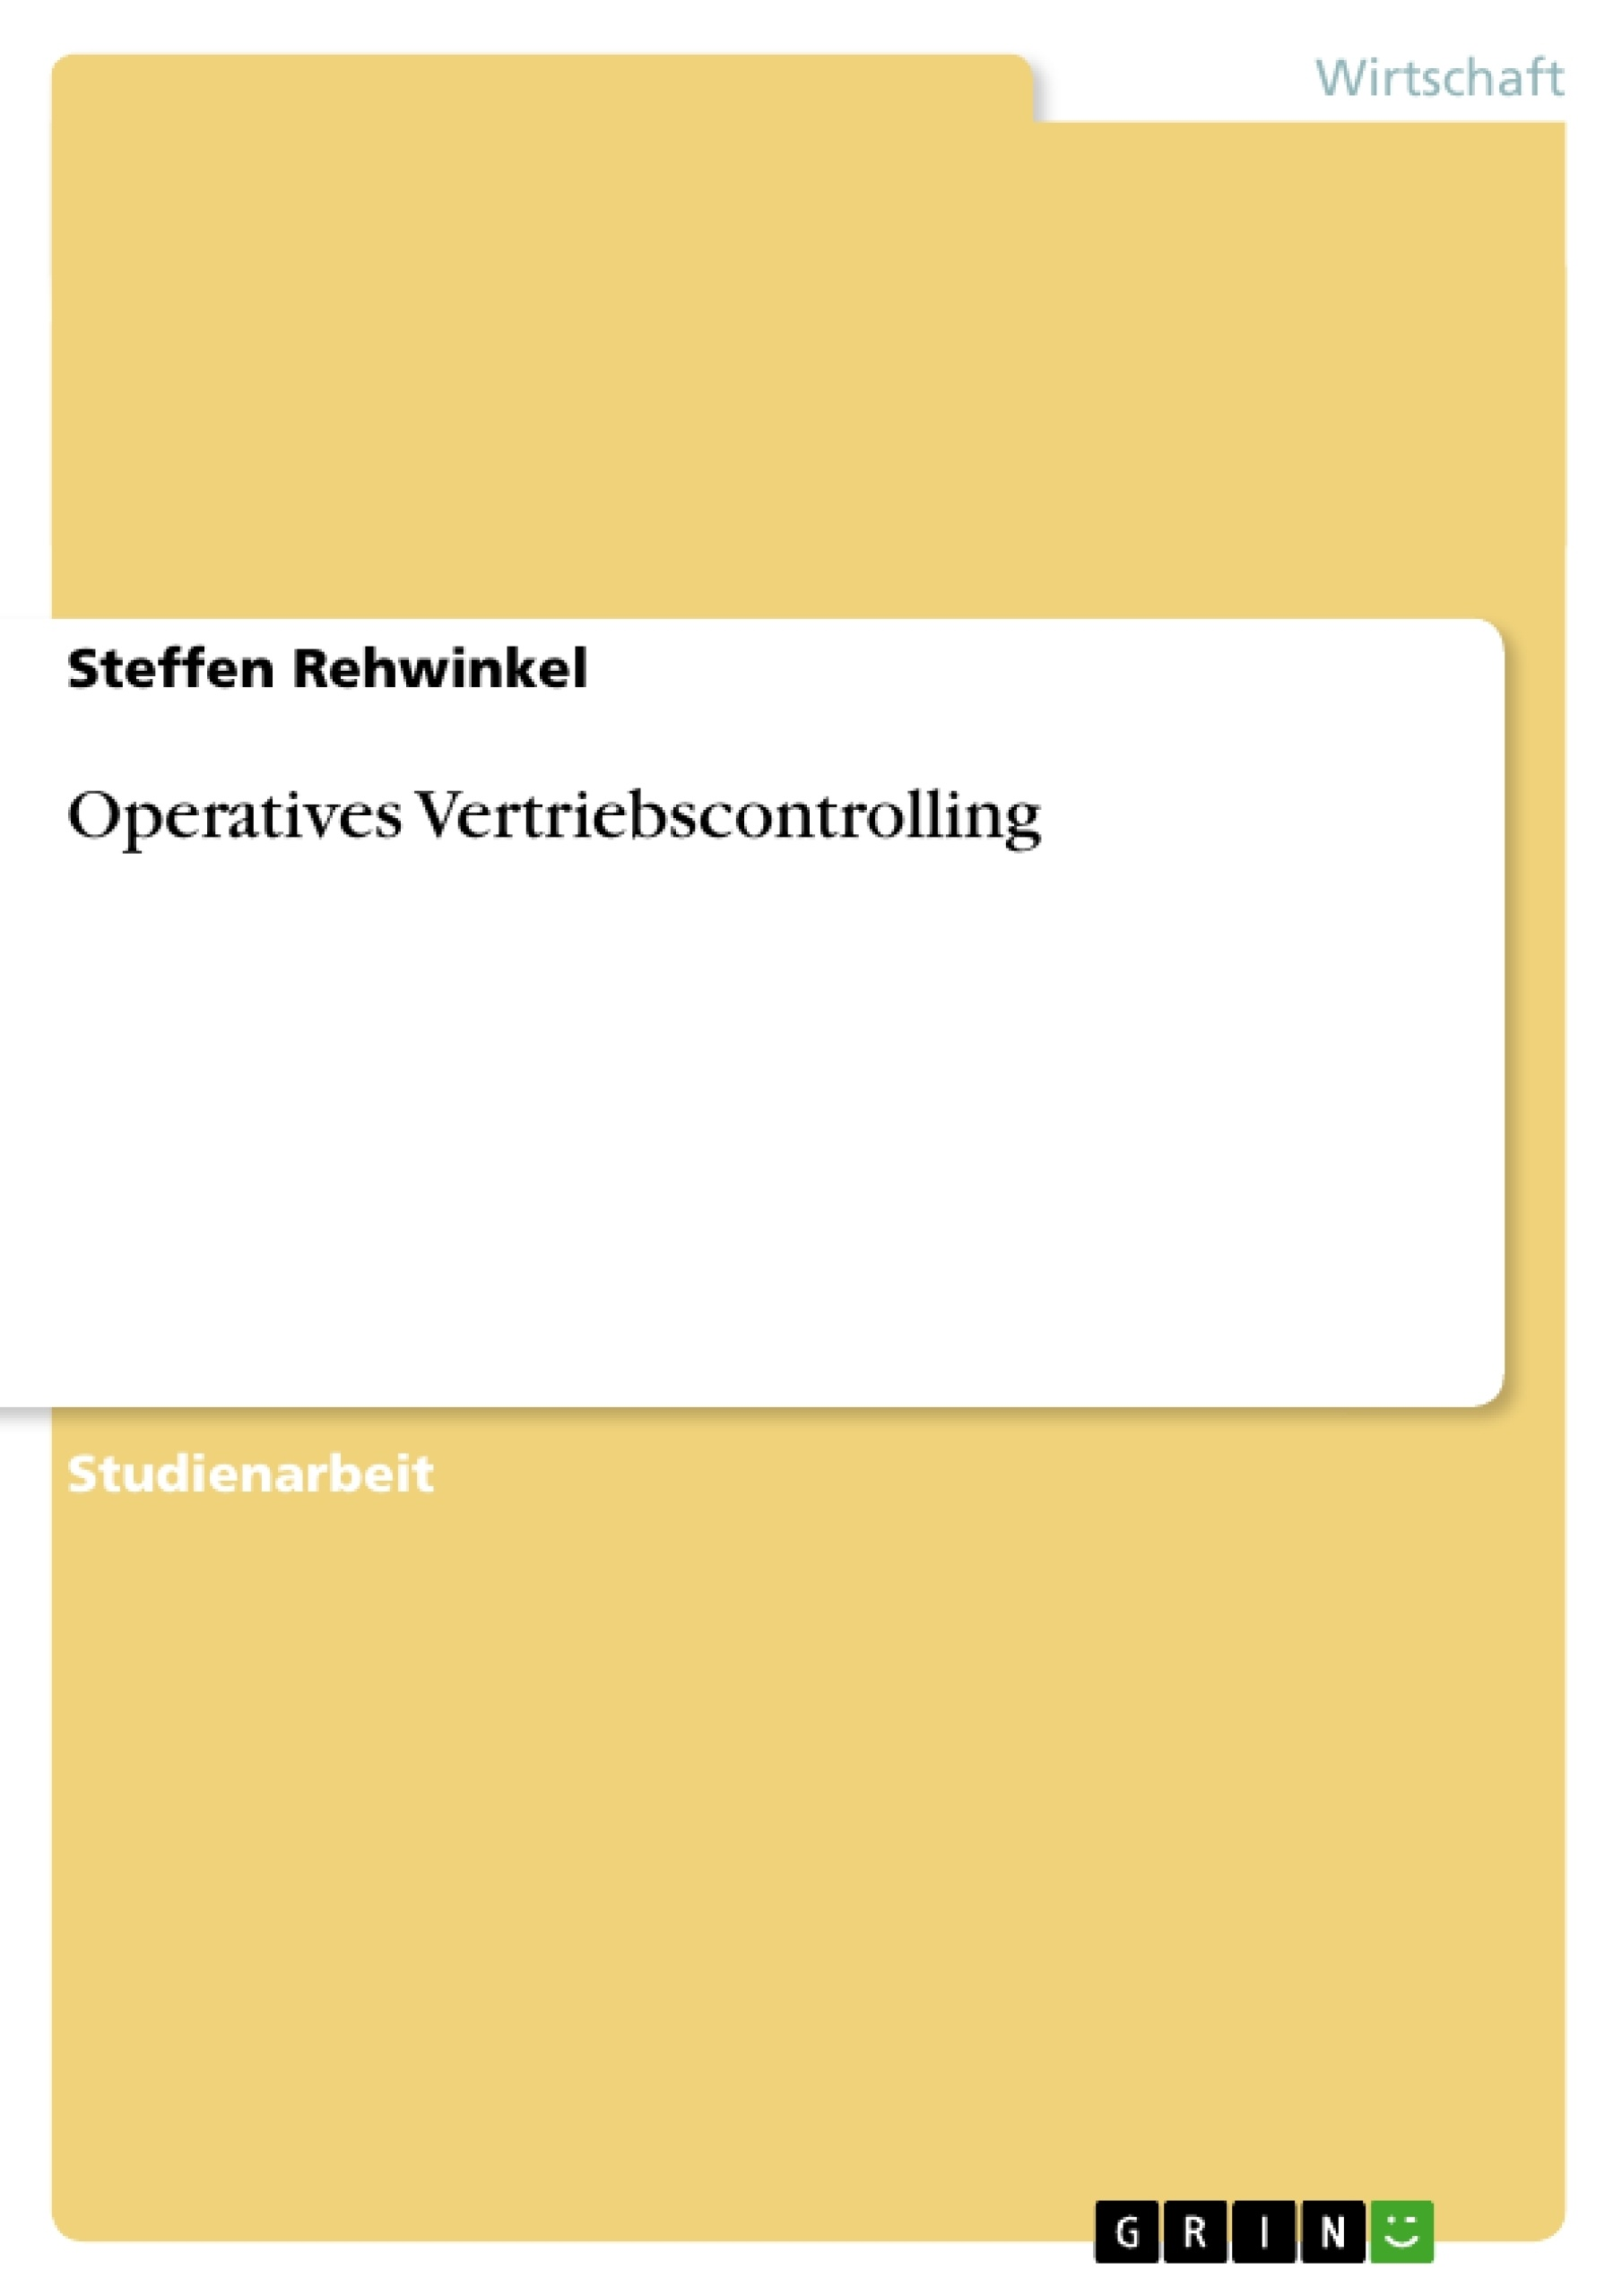 Titel: Operatives Vertriebscontrolling